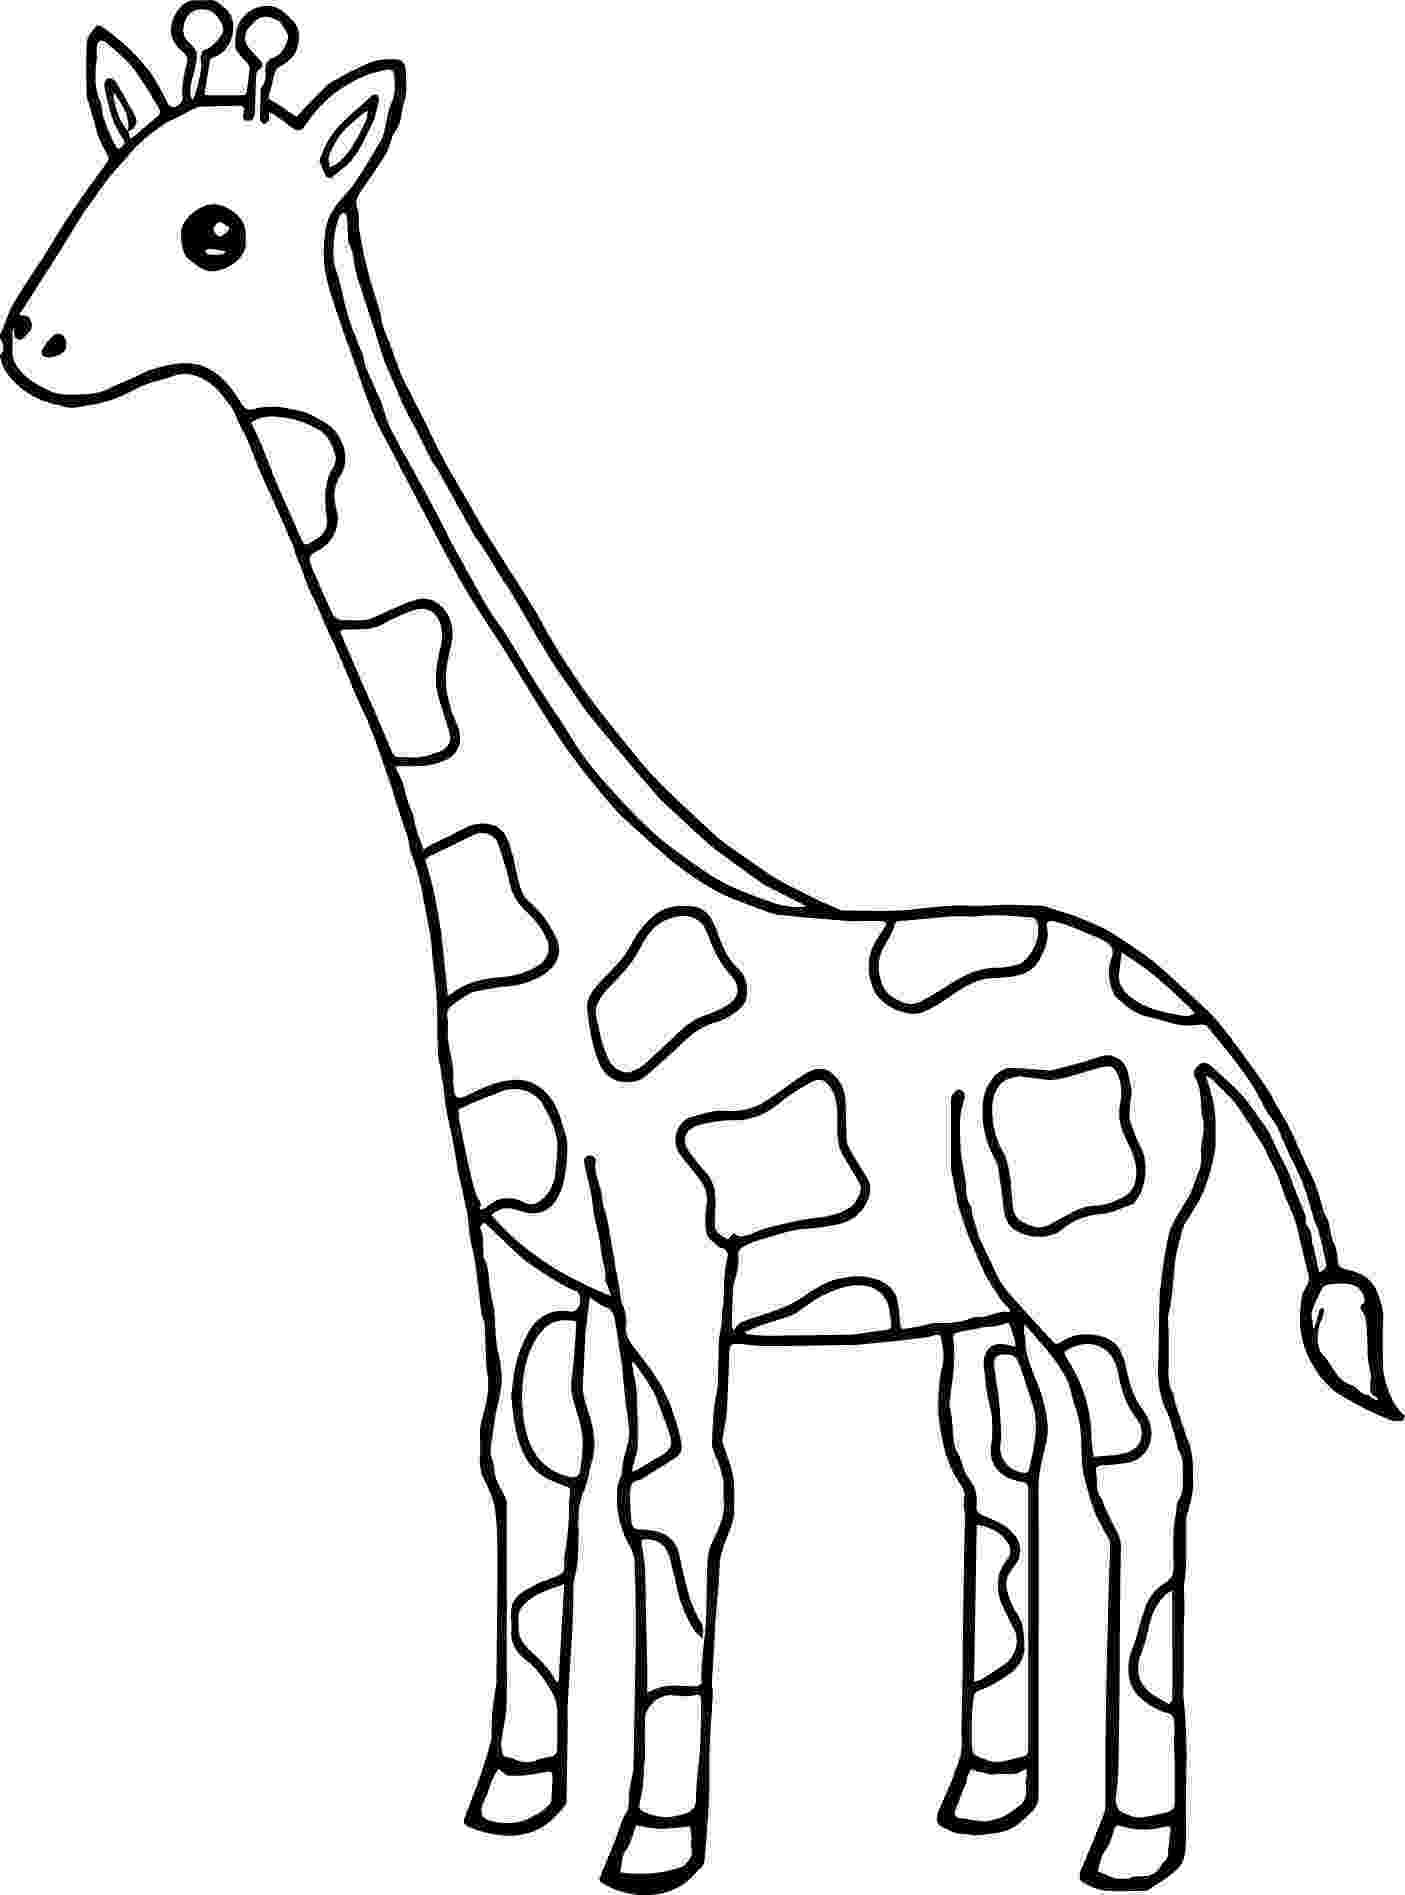 giraffe to color print download giraffe coloring pages for kids to have fun color to giraffe